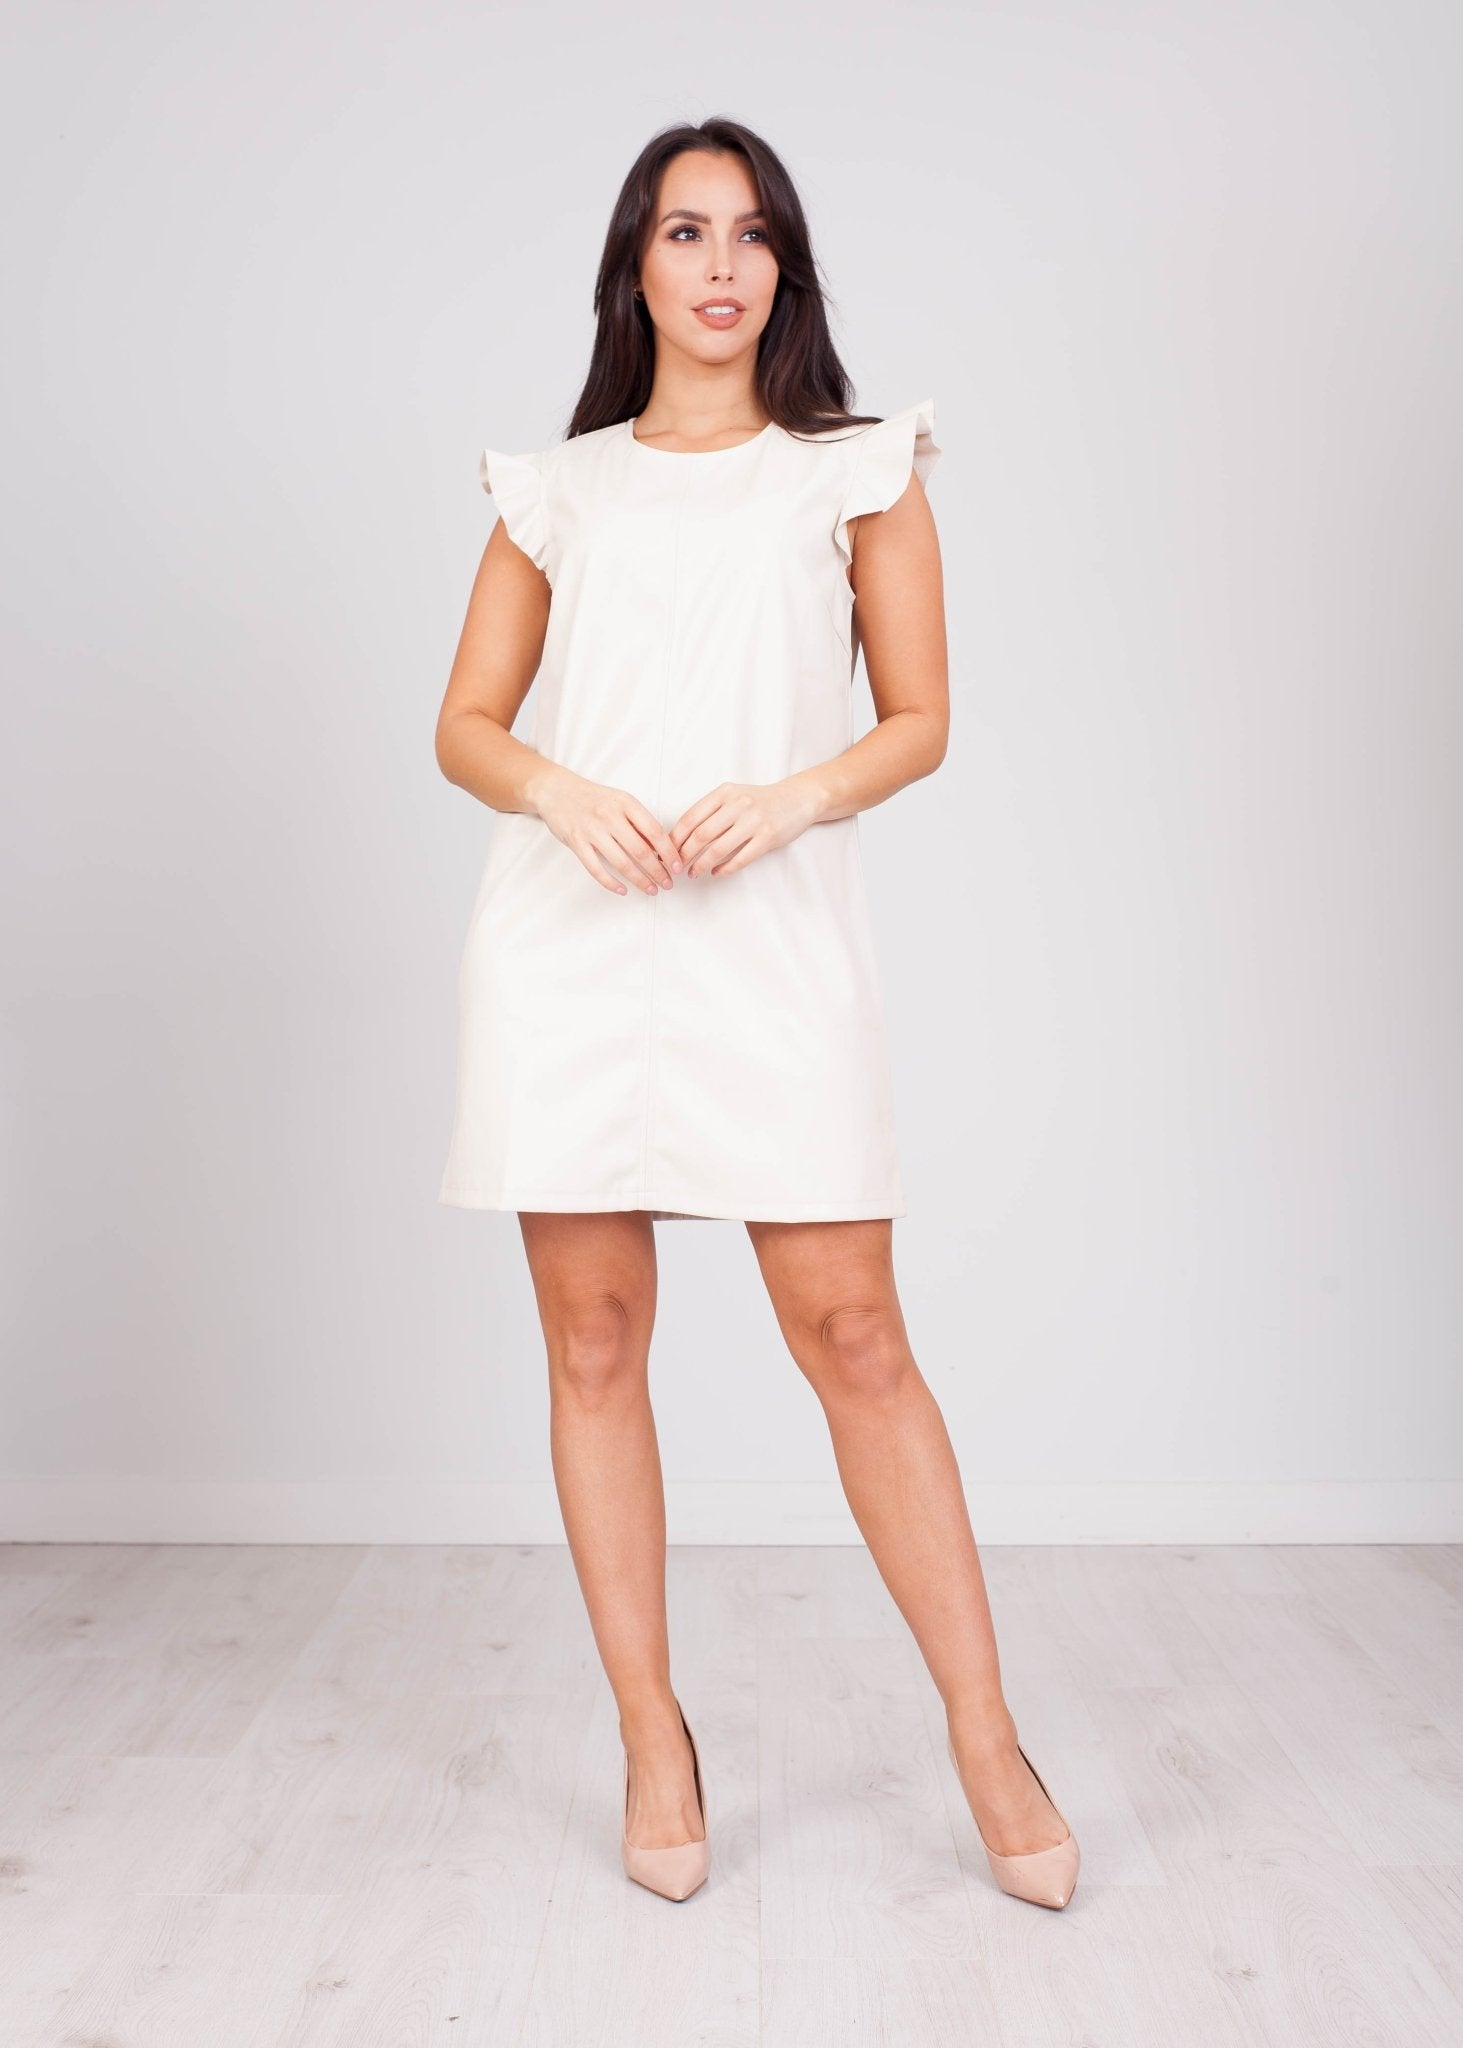 Fifi Cream Leather Mini Dress - The Walk in Wardrobe